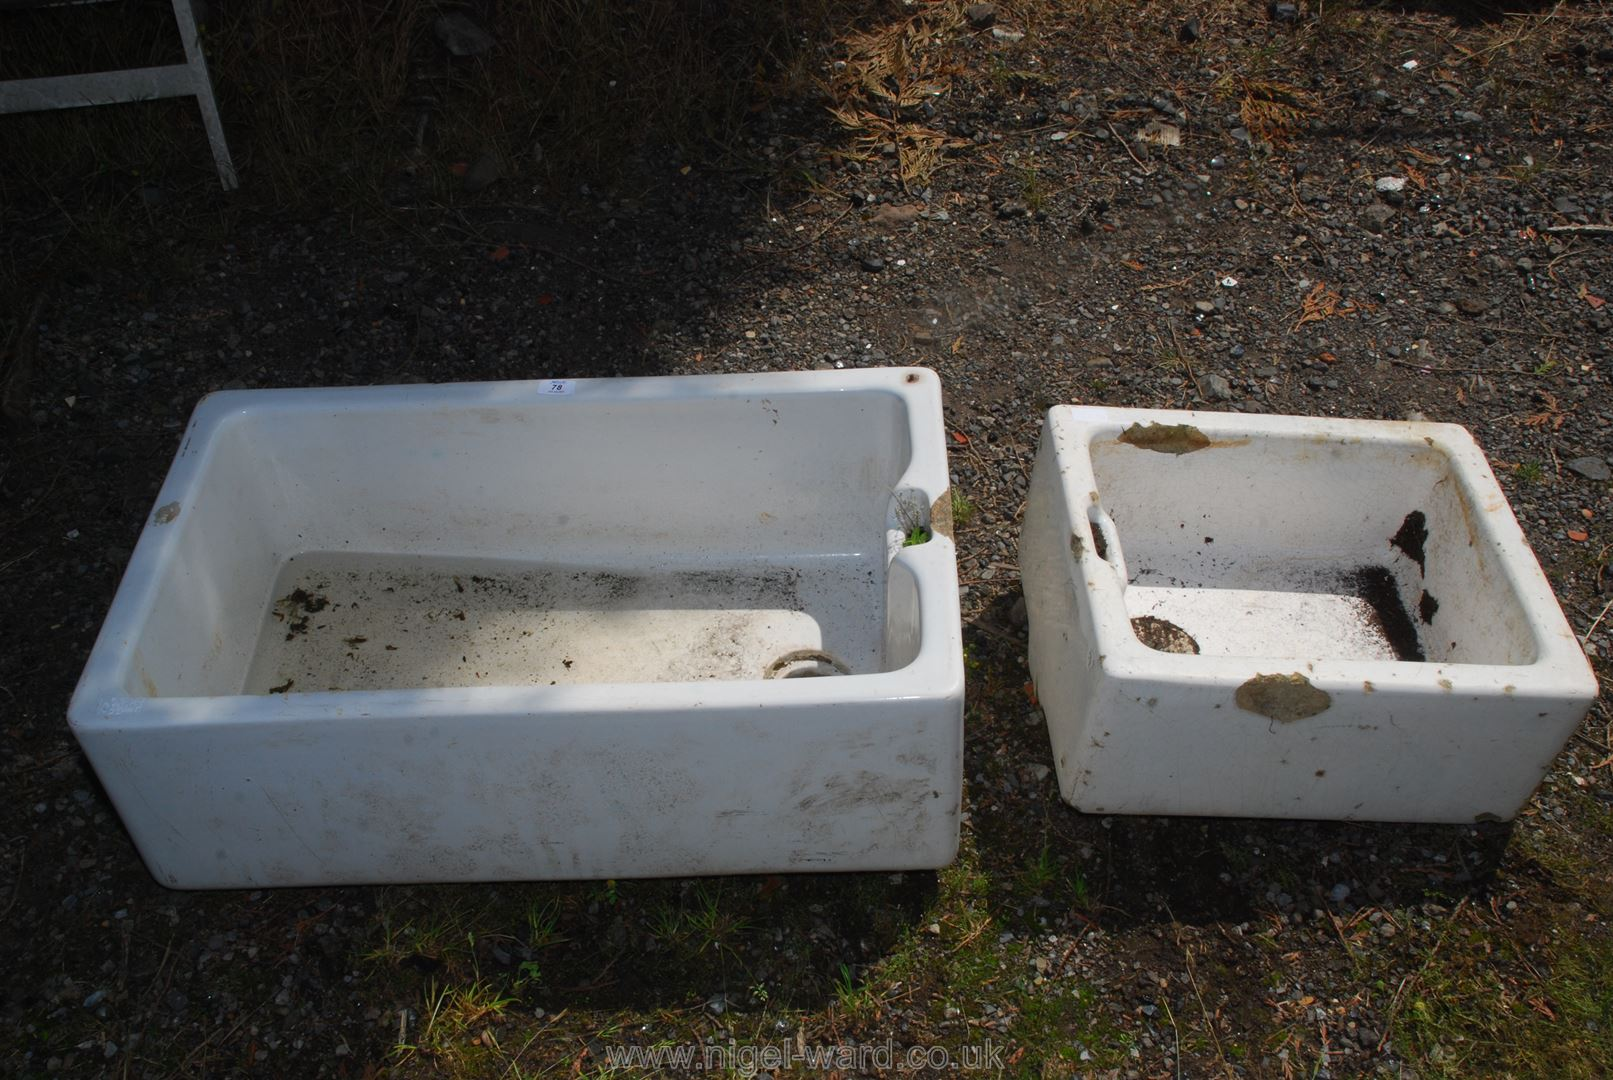 Belfast style sink 30'' x 18'' x 11'', plus one other.